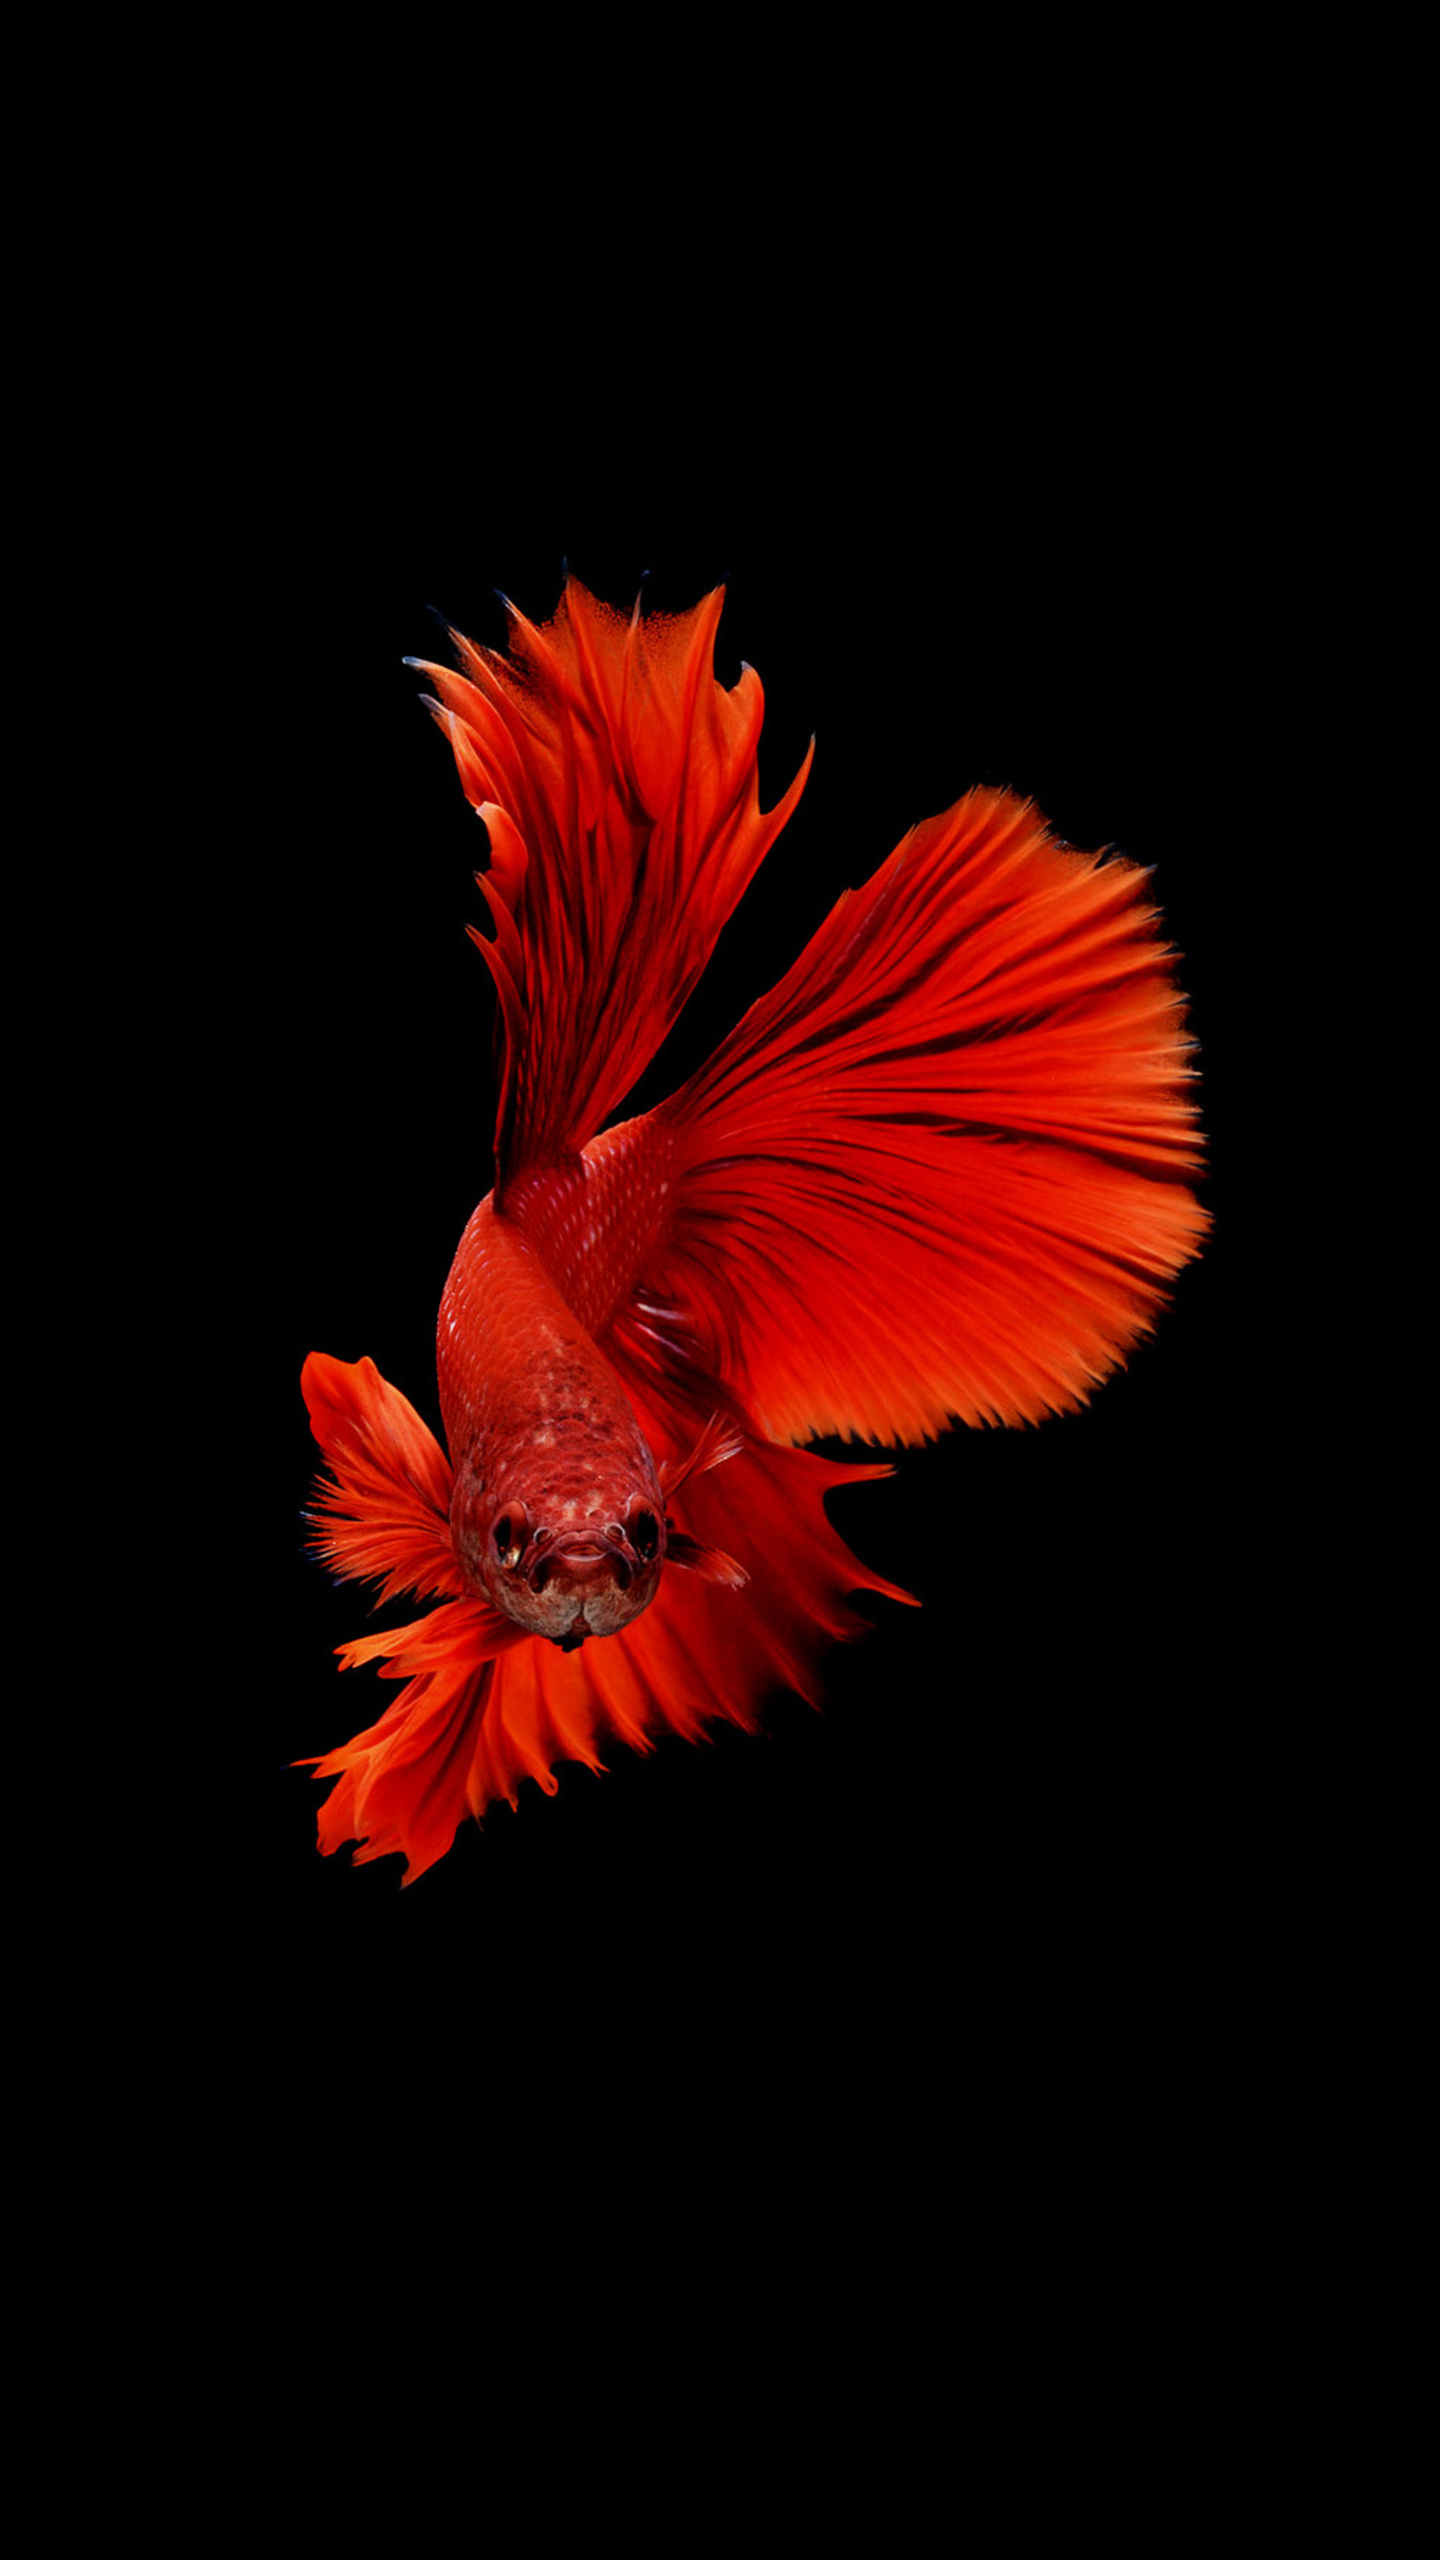 Moving Wallpapers For Iphone 6s 1440x2560 Betta Fish Samsung Galaxy S6 S7 Google Pixel Xl